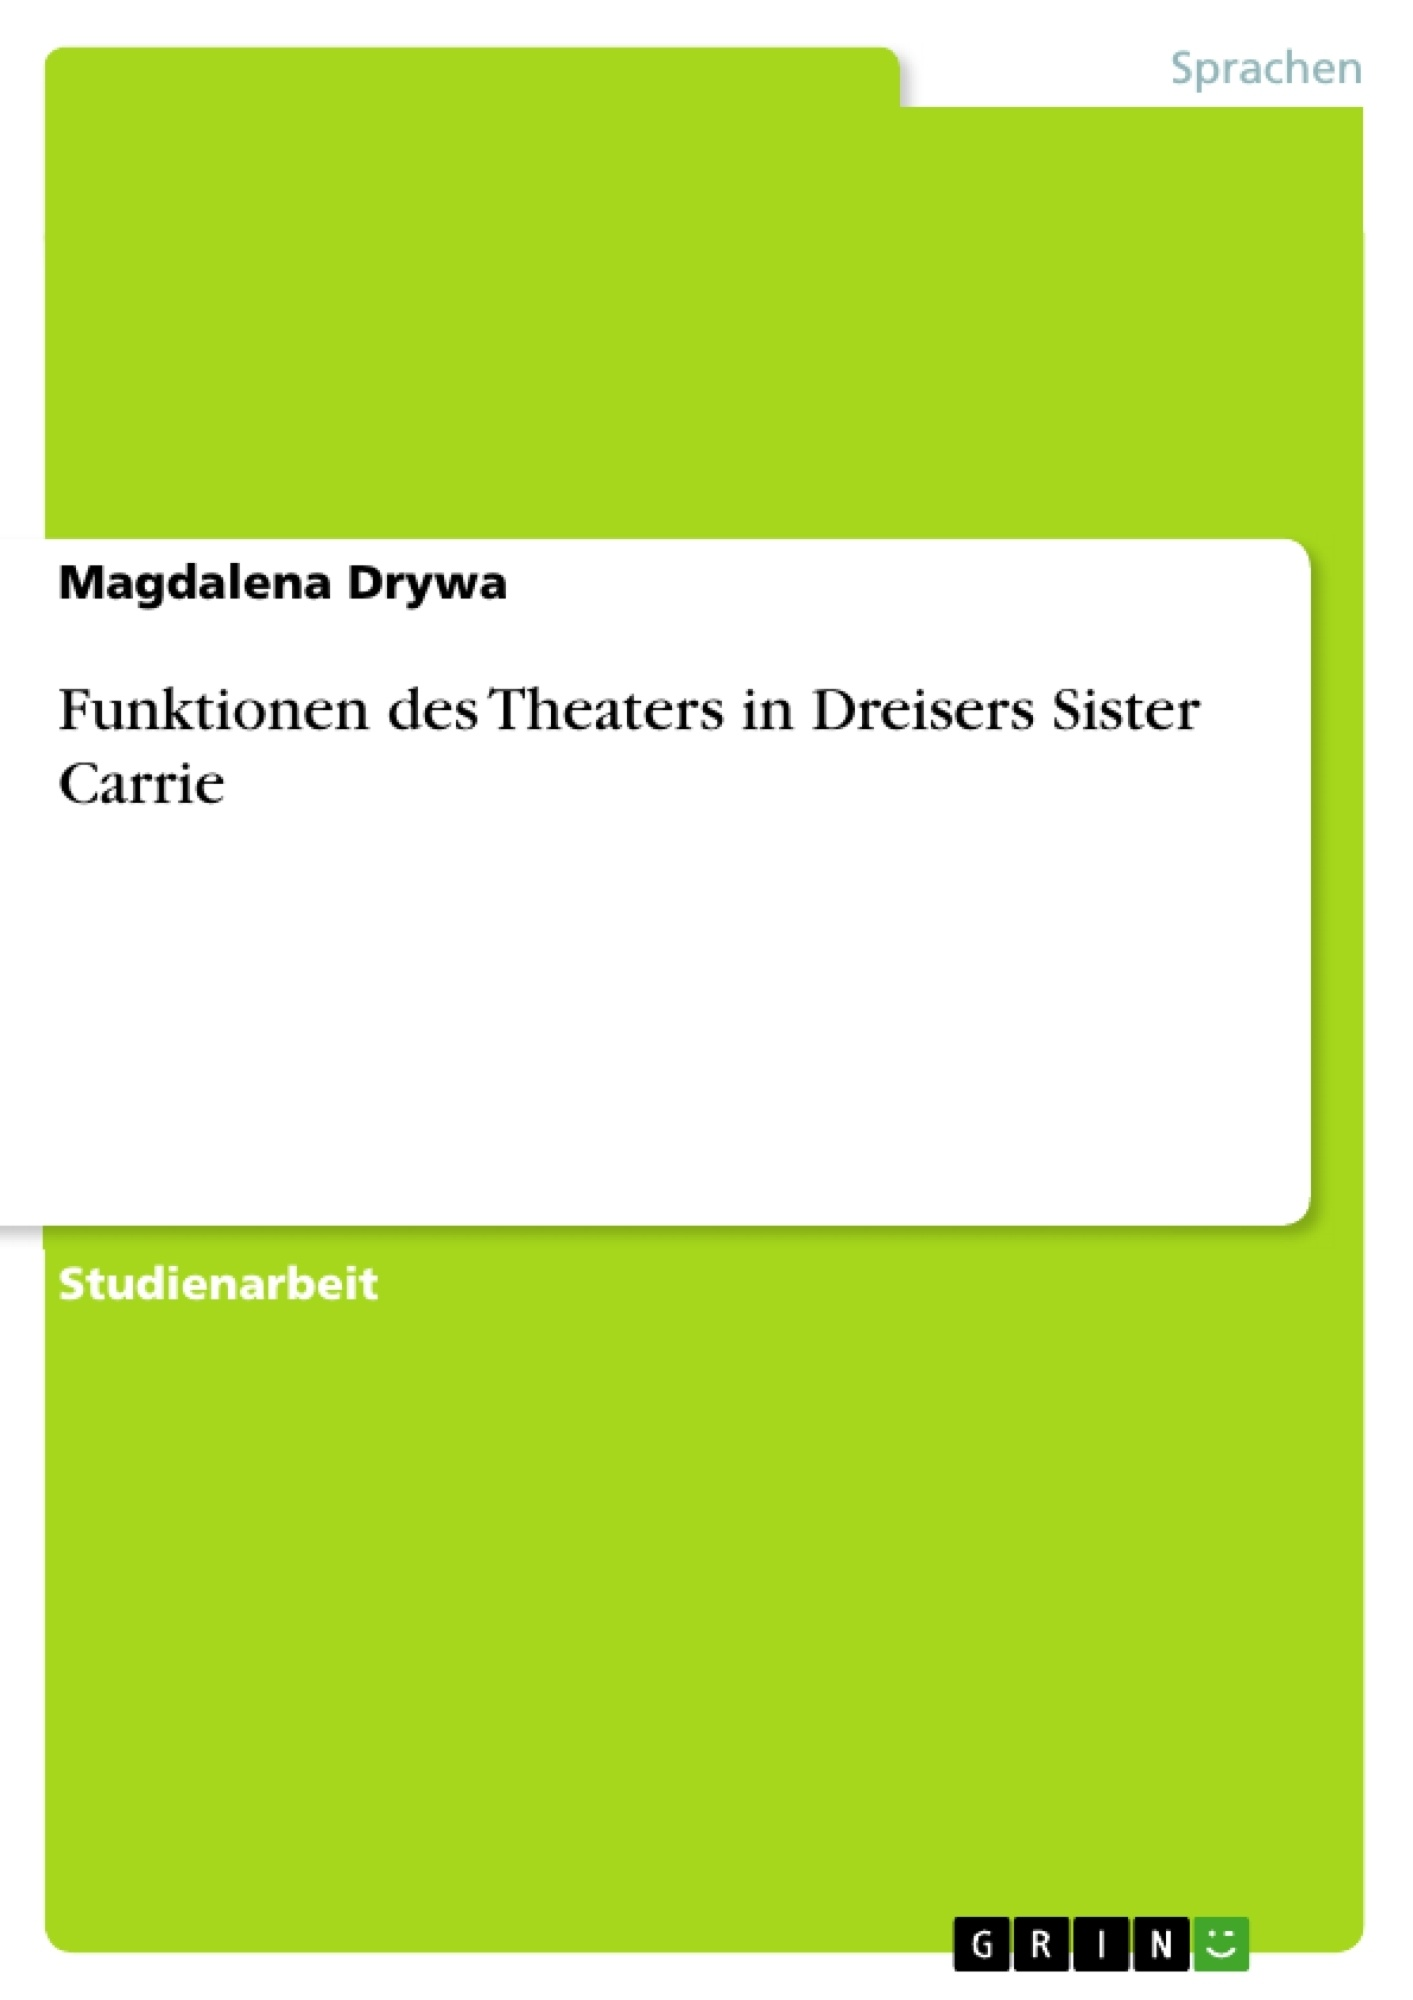 Titel: Funktionen des Theaters in Dreisers Sister Carrie